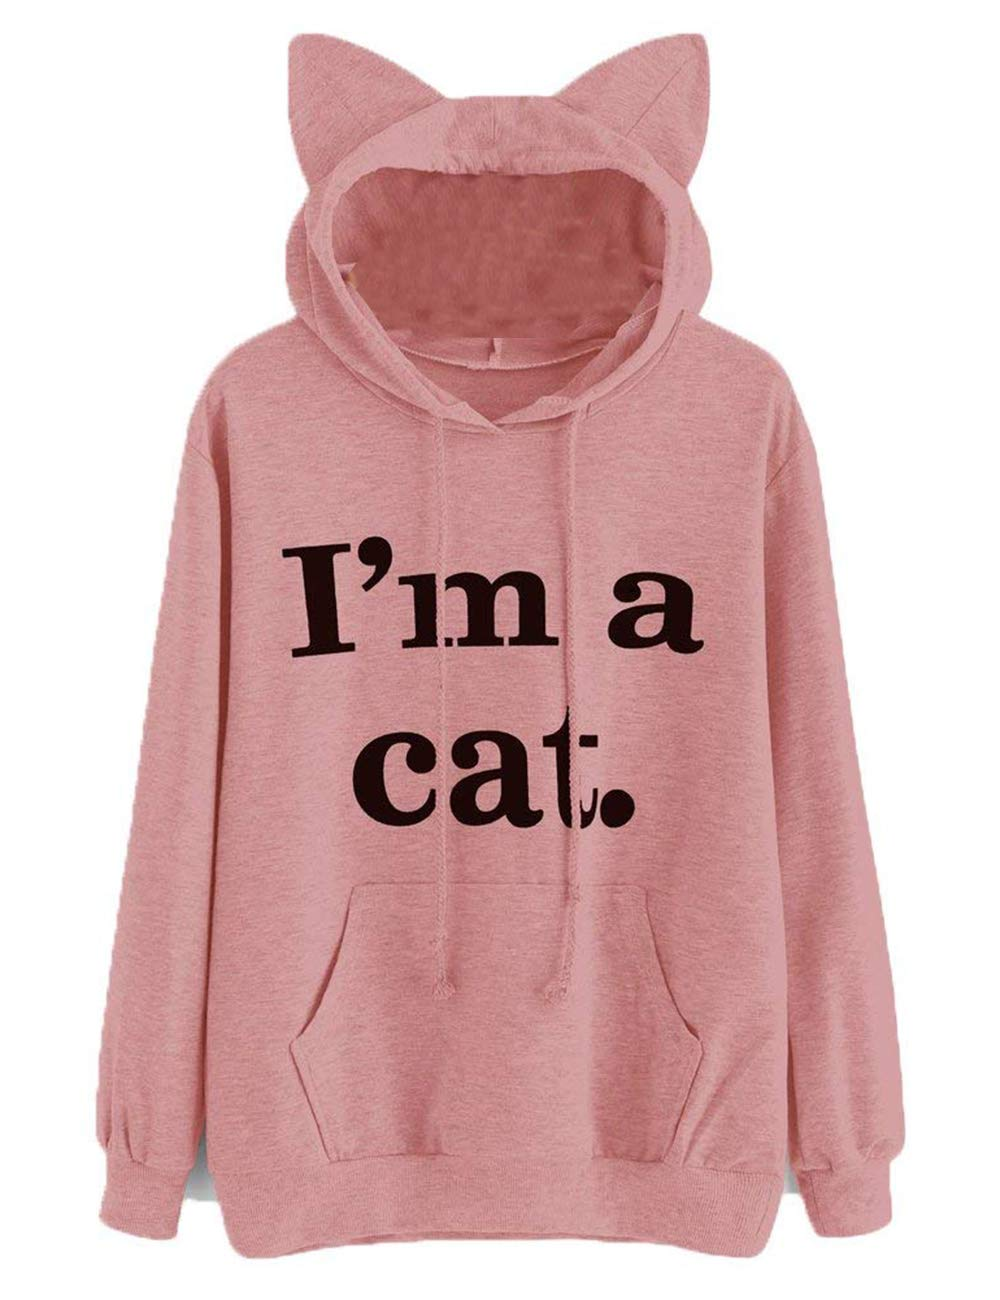 Women's Cat Ear Long Sleeve Hoodie Sweatshirt Hooded Pullover T-Shirt Tops with Pockets (Style B-Pink, S)